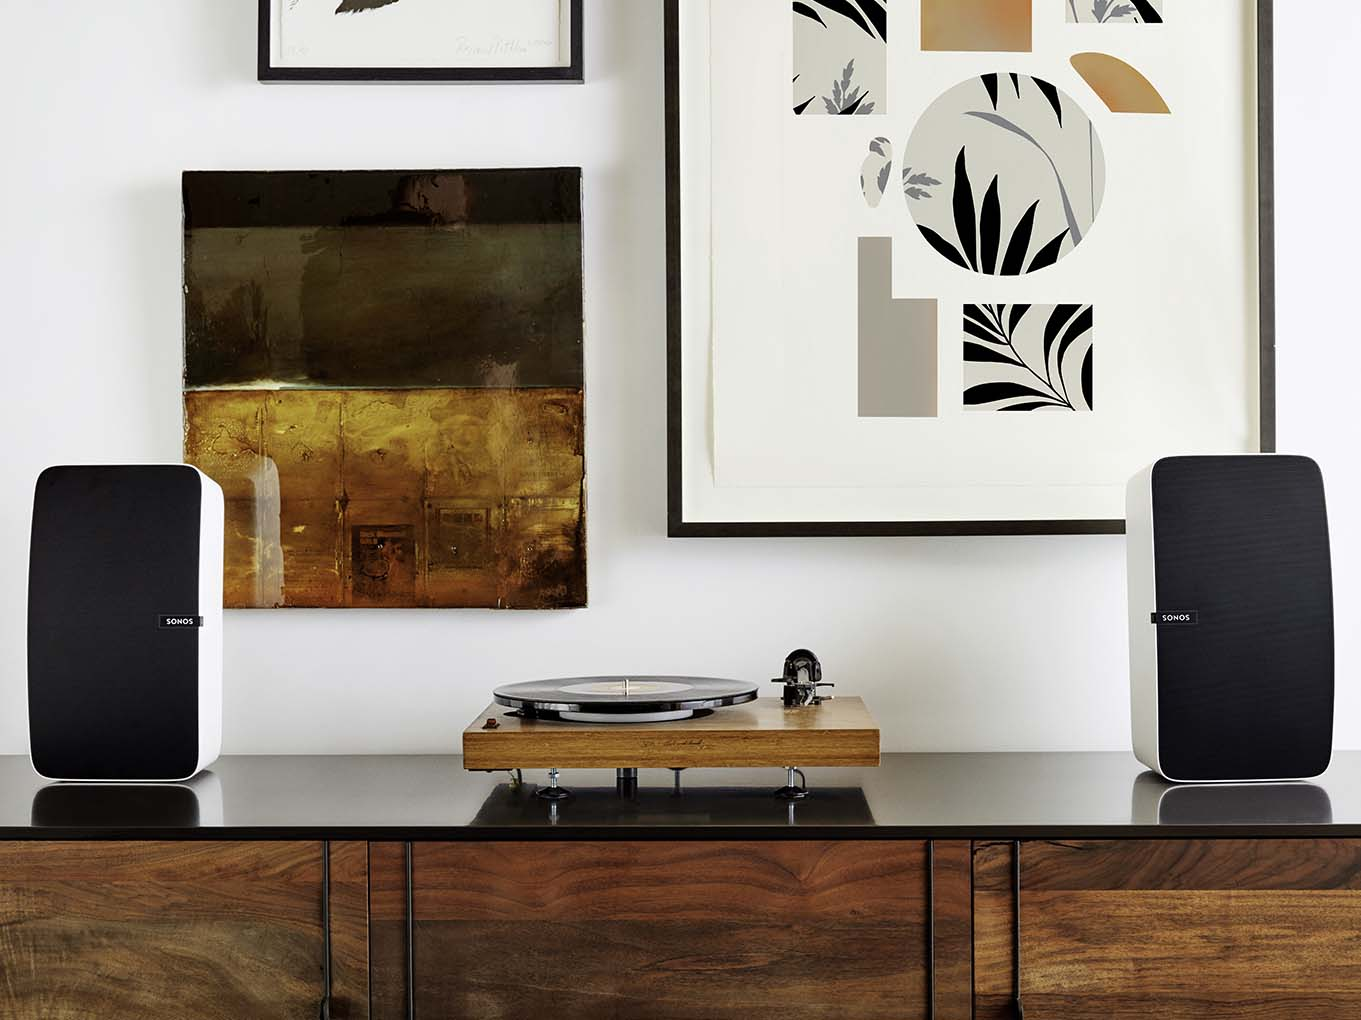 Home-Audio-Systems-Sonos-Play-5-speakers-record-player